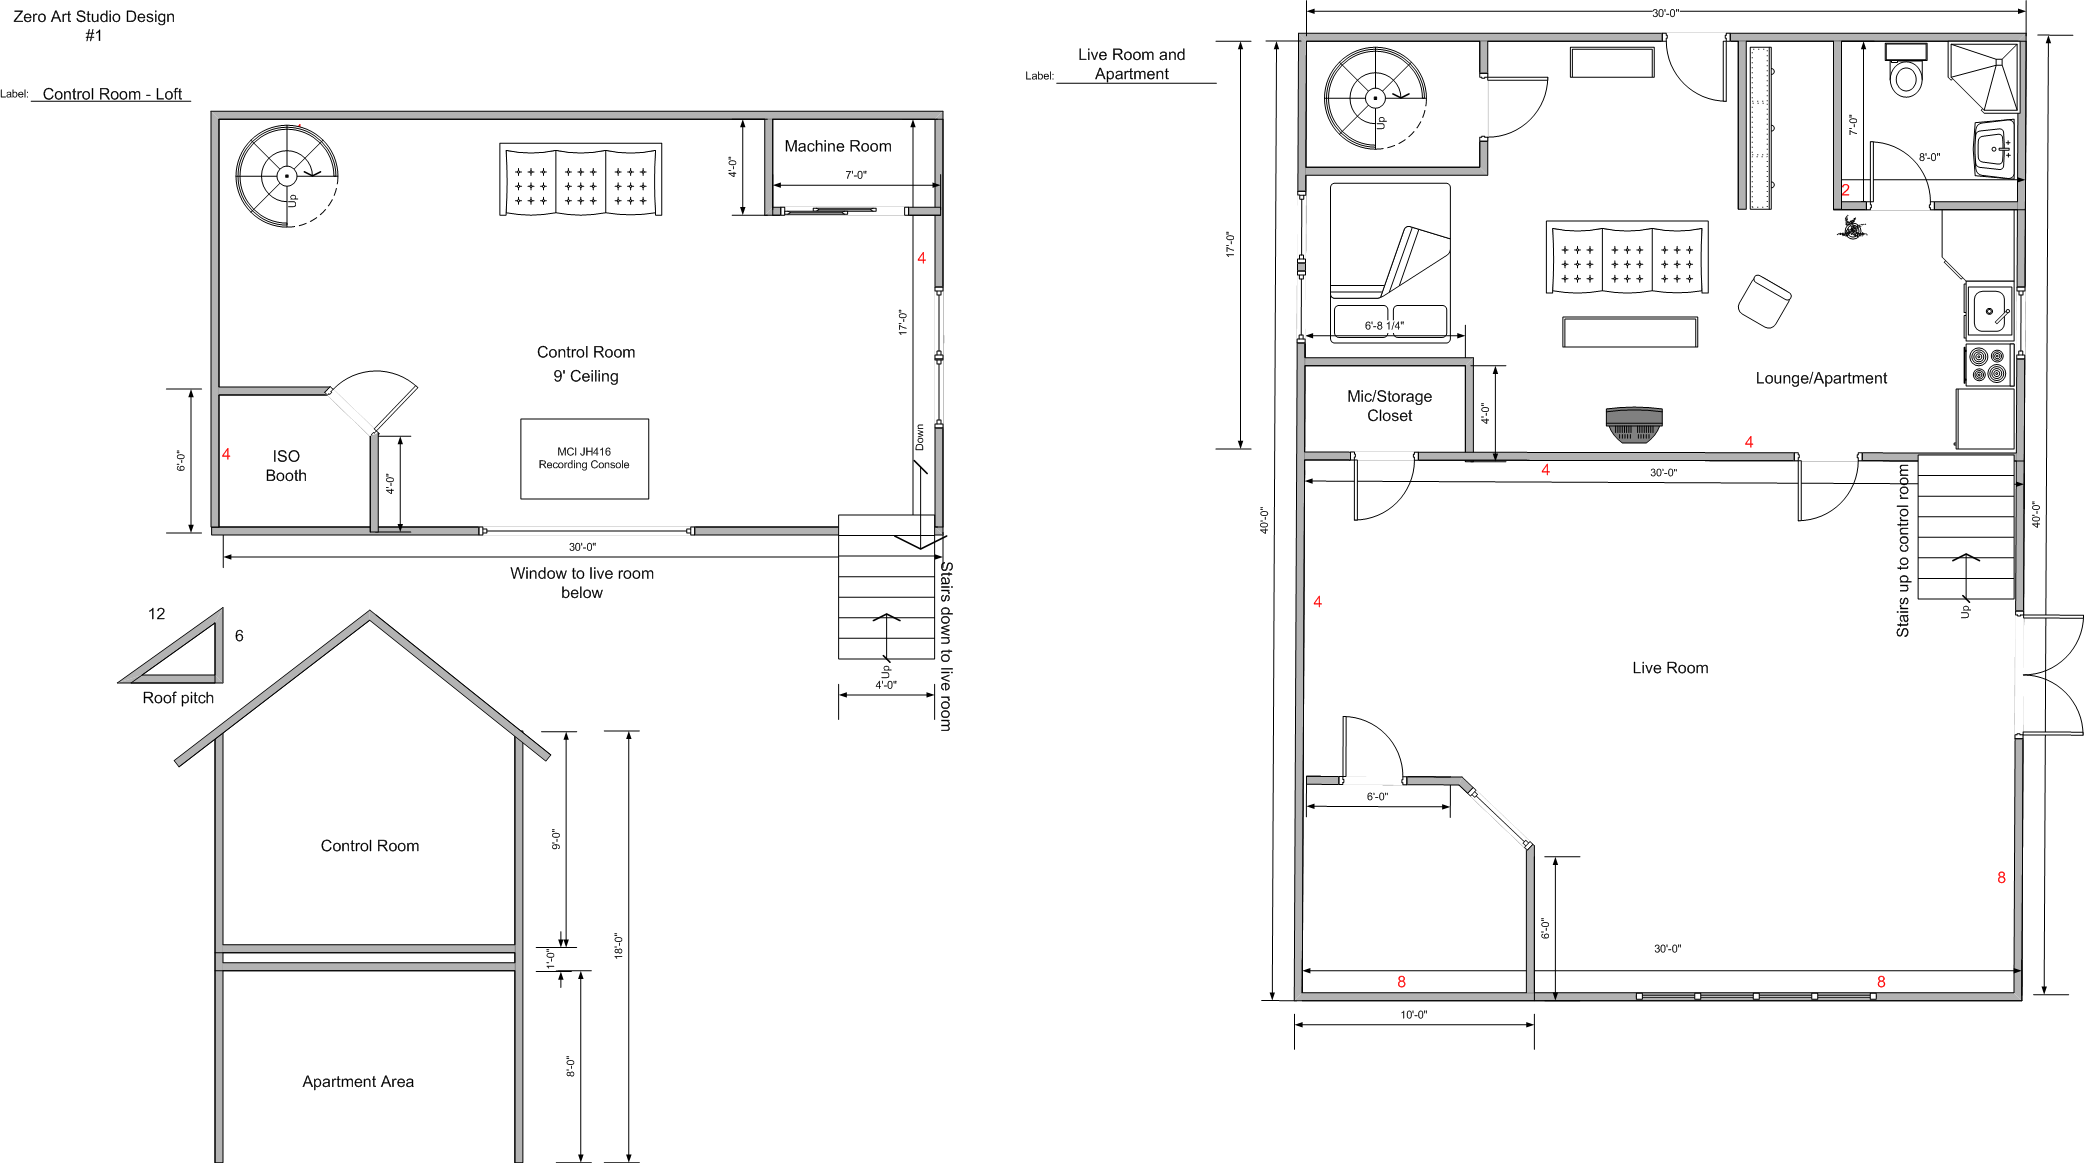 zero art studio final floor plan tate eskew. Black Bedroom Furniture Sets. Home Design Ideas